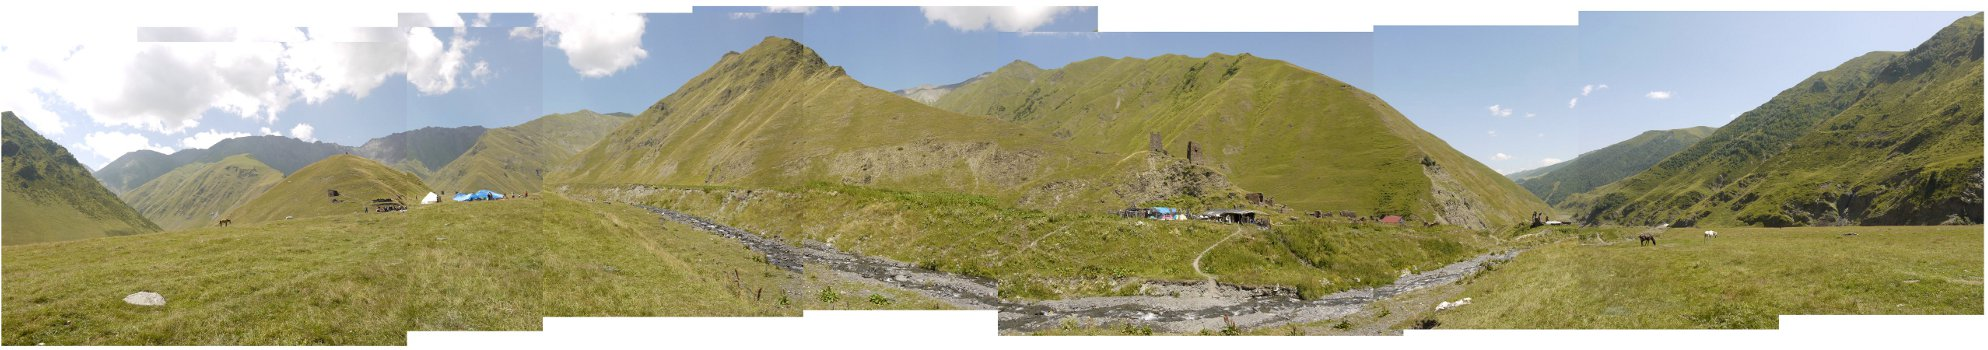 A panorama of Tsovata in the mountainous eastern Georgian region of Tusheti. The photograph was taken during the Bats people's annual summer festival (dadaloba) in 2010.